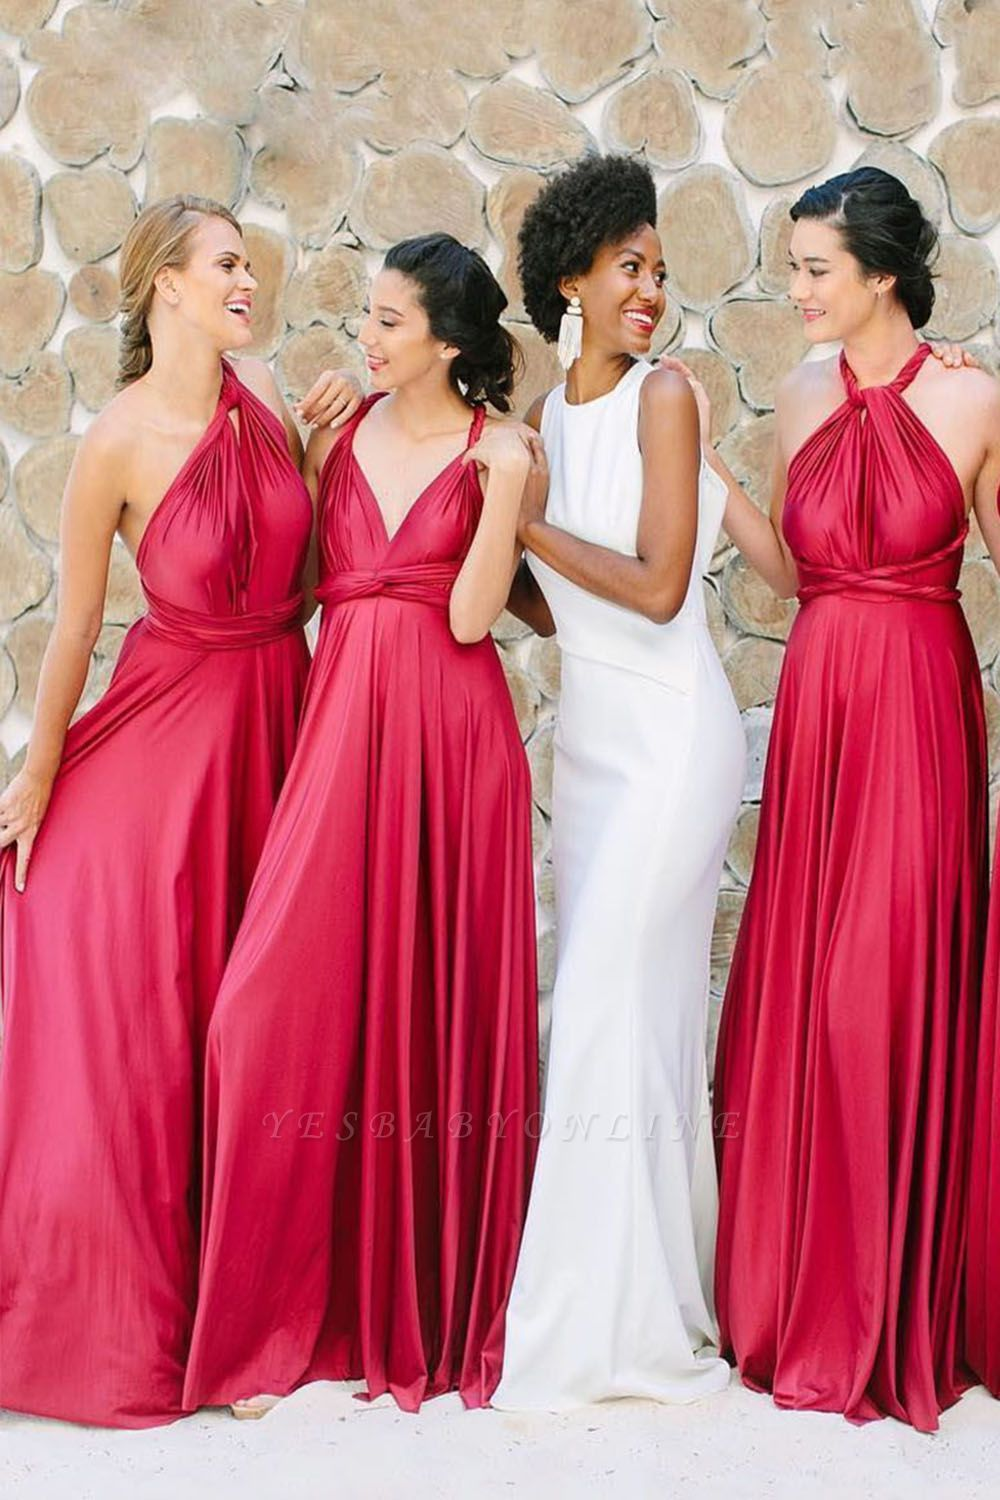 Satin Convertible Long Sexy Bridesmaid Dresses | Elegant Wedding Guest Dresses